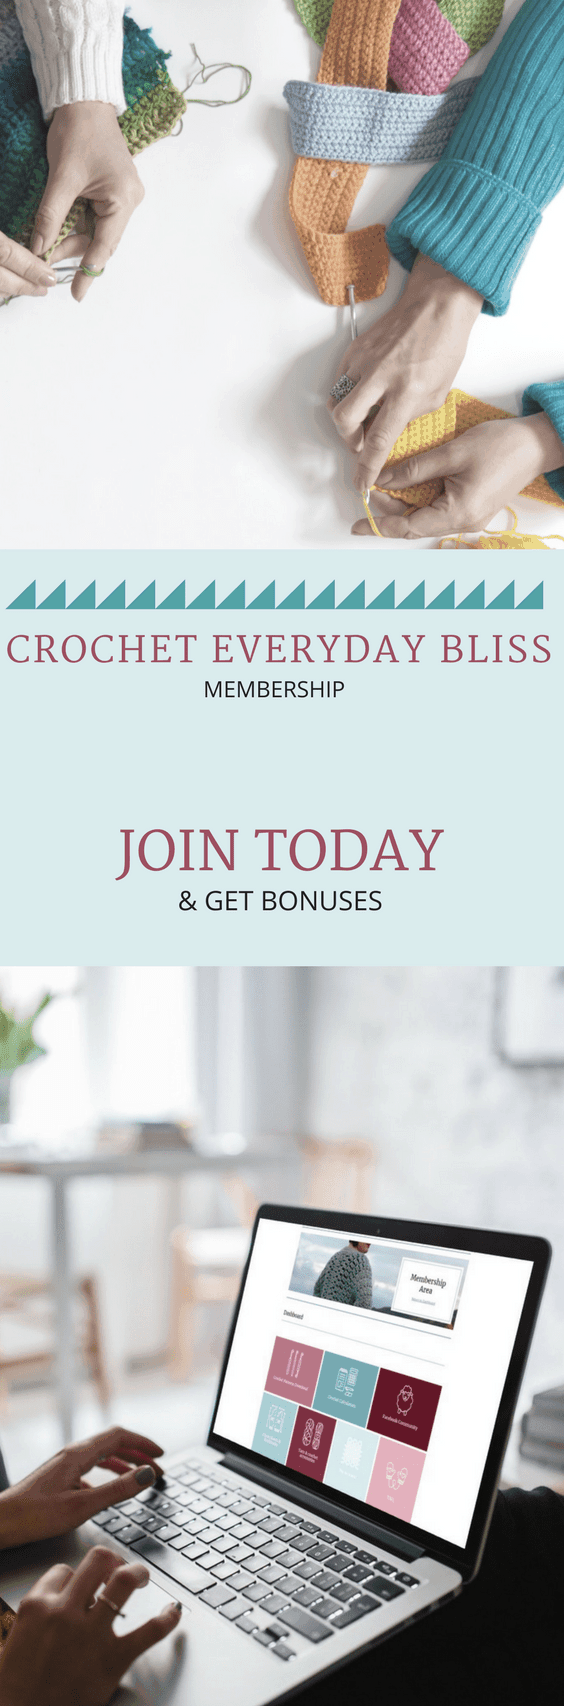 Crochet Everyday Bliss. A crochet membership. Crochet patterns. Crochet Calculators. Crochet Resources. Crochet community. #crochetpattern #crochet #crochetcommunity #crocheteveryday #crocheteverydaybliss